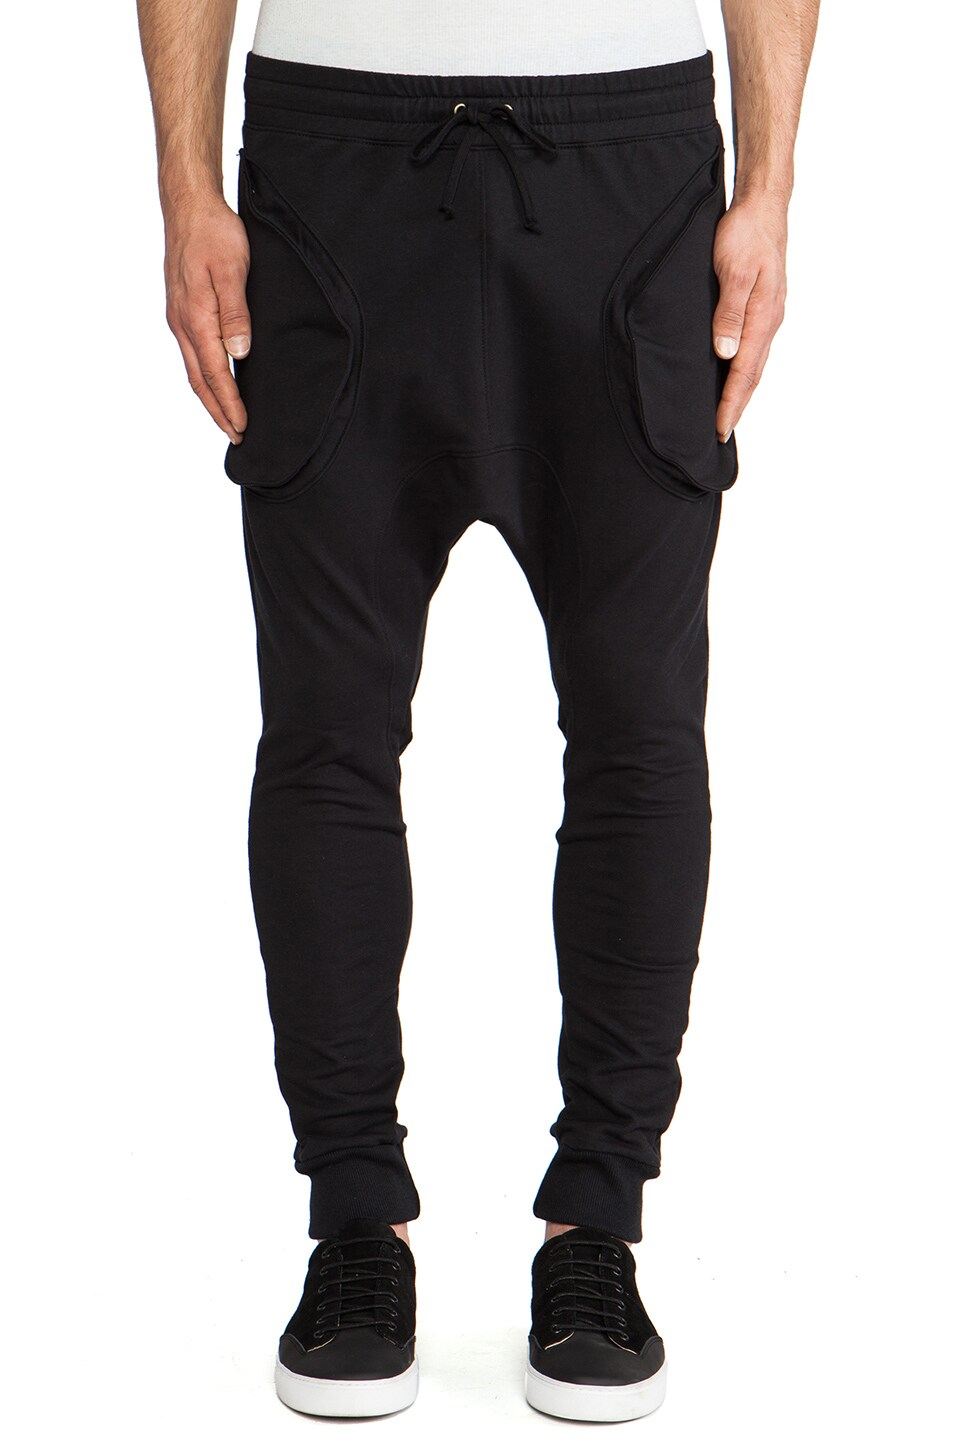 Post Bellum Drop Crotch Sweatpant in Noir